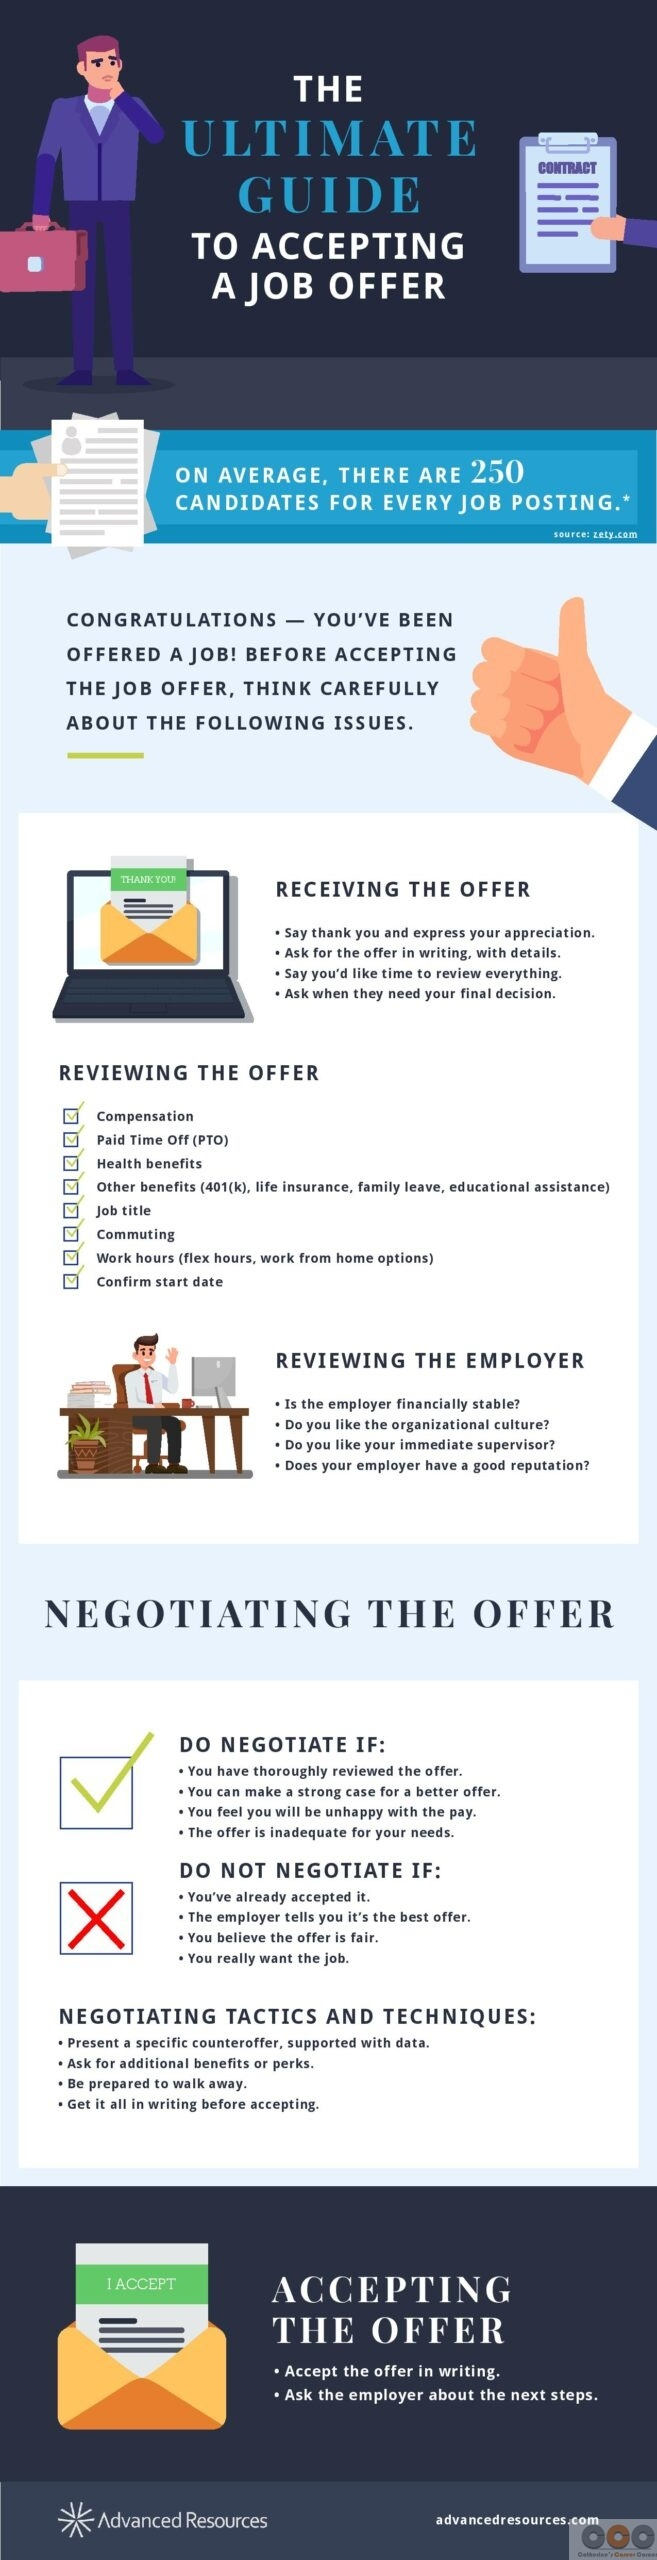 Your Guide to Accepting a Job Offer